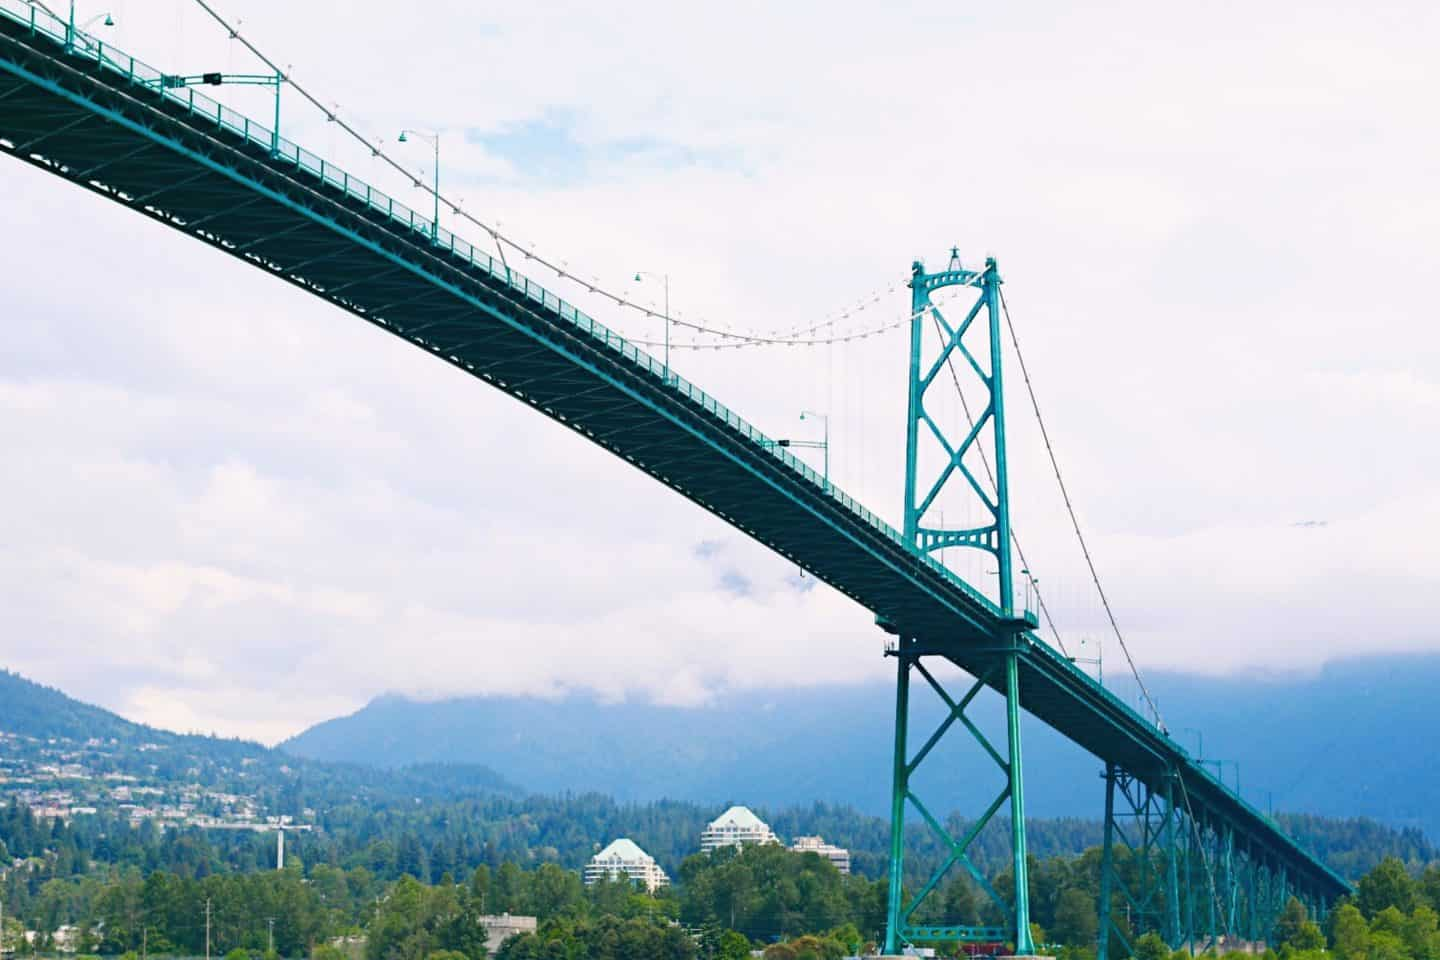 Lion's Gate Bridge from Stanley Park Seawall, Vancouver, British Columbia